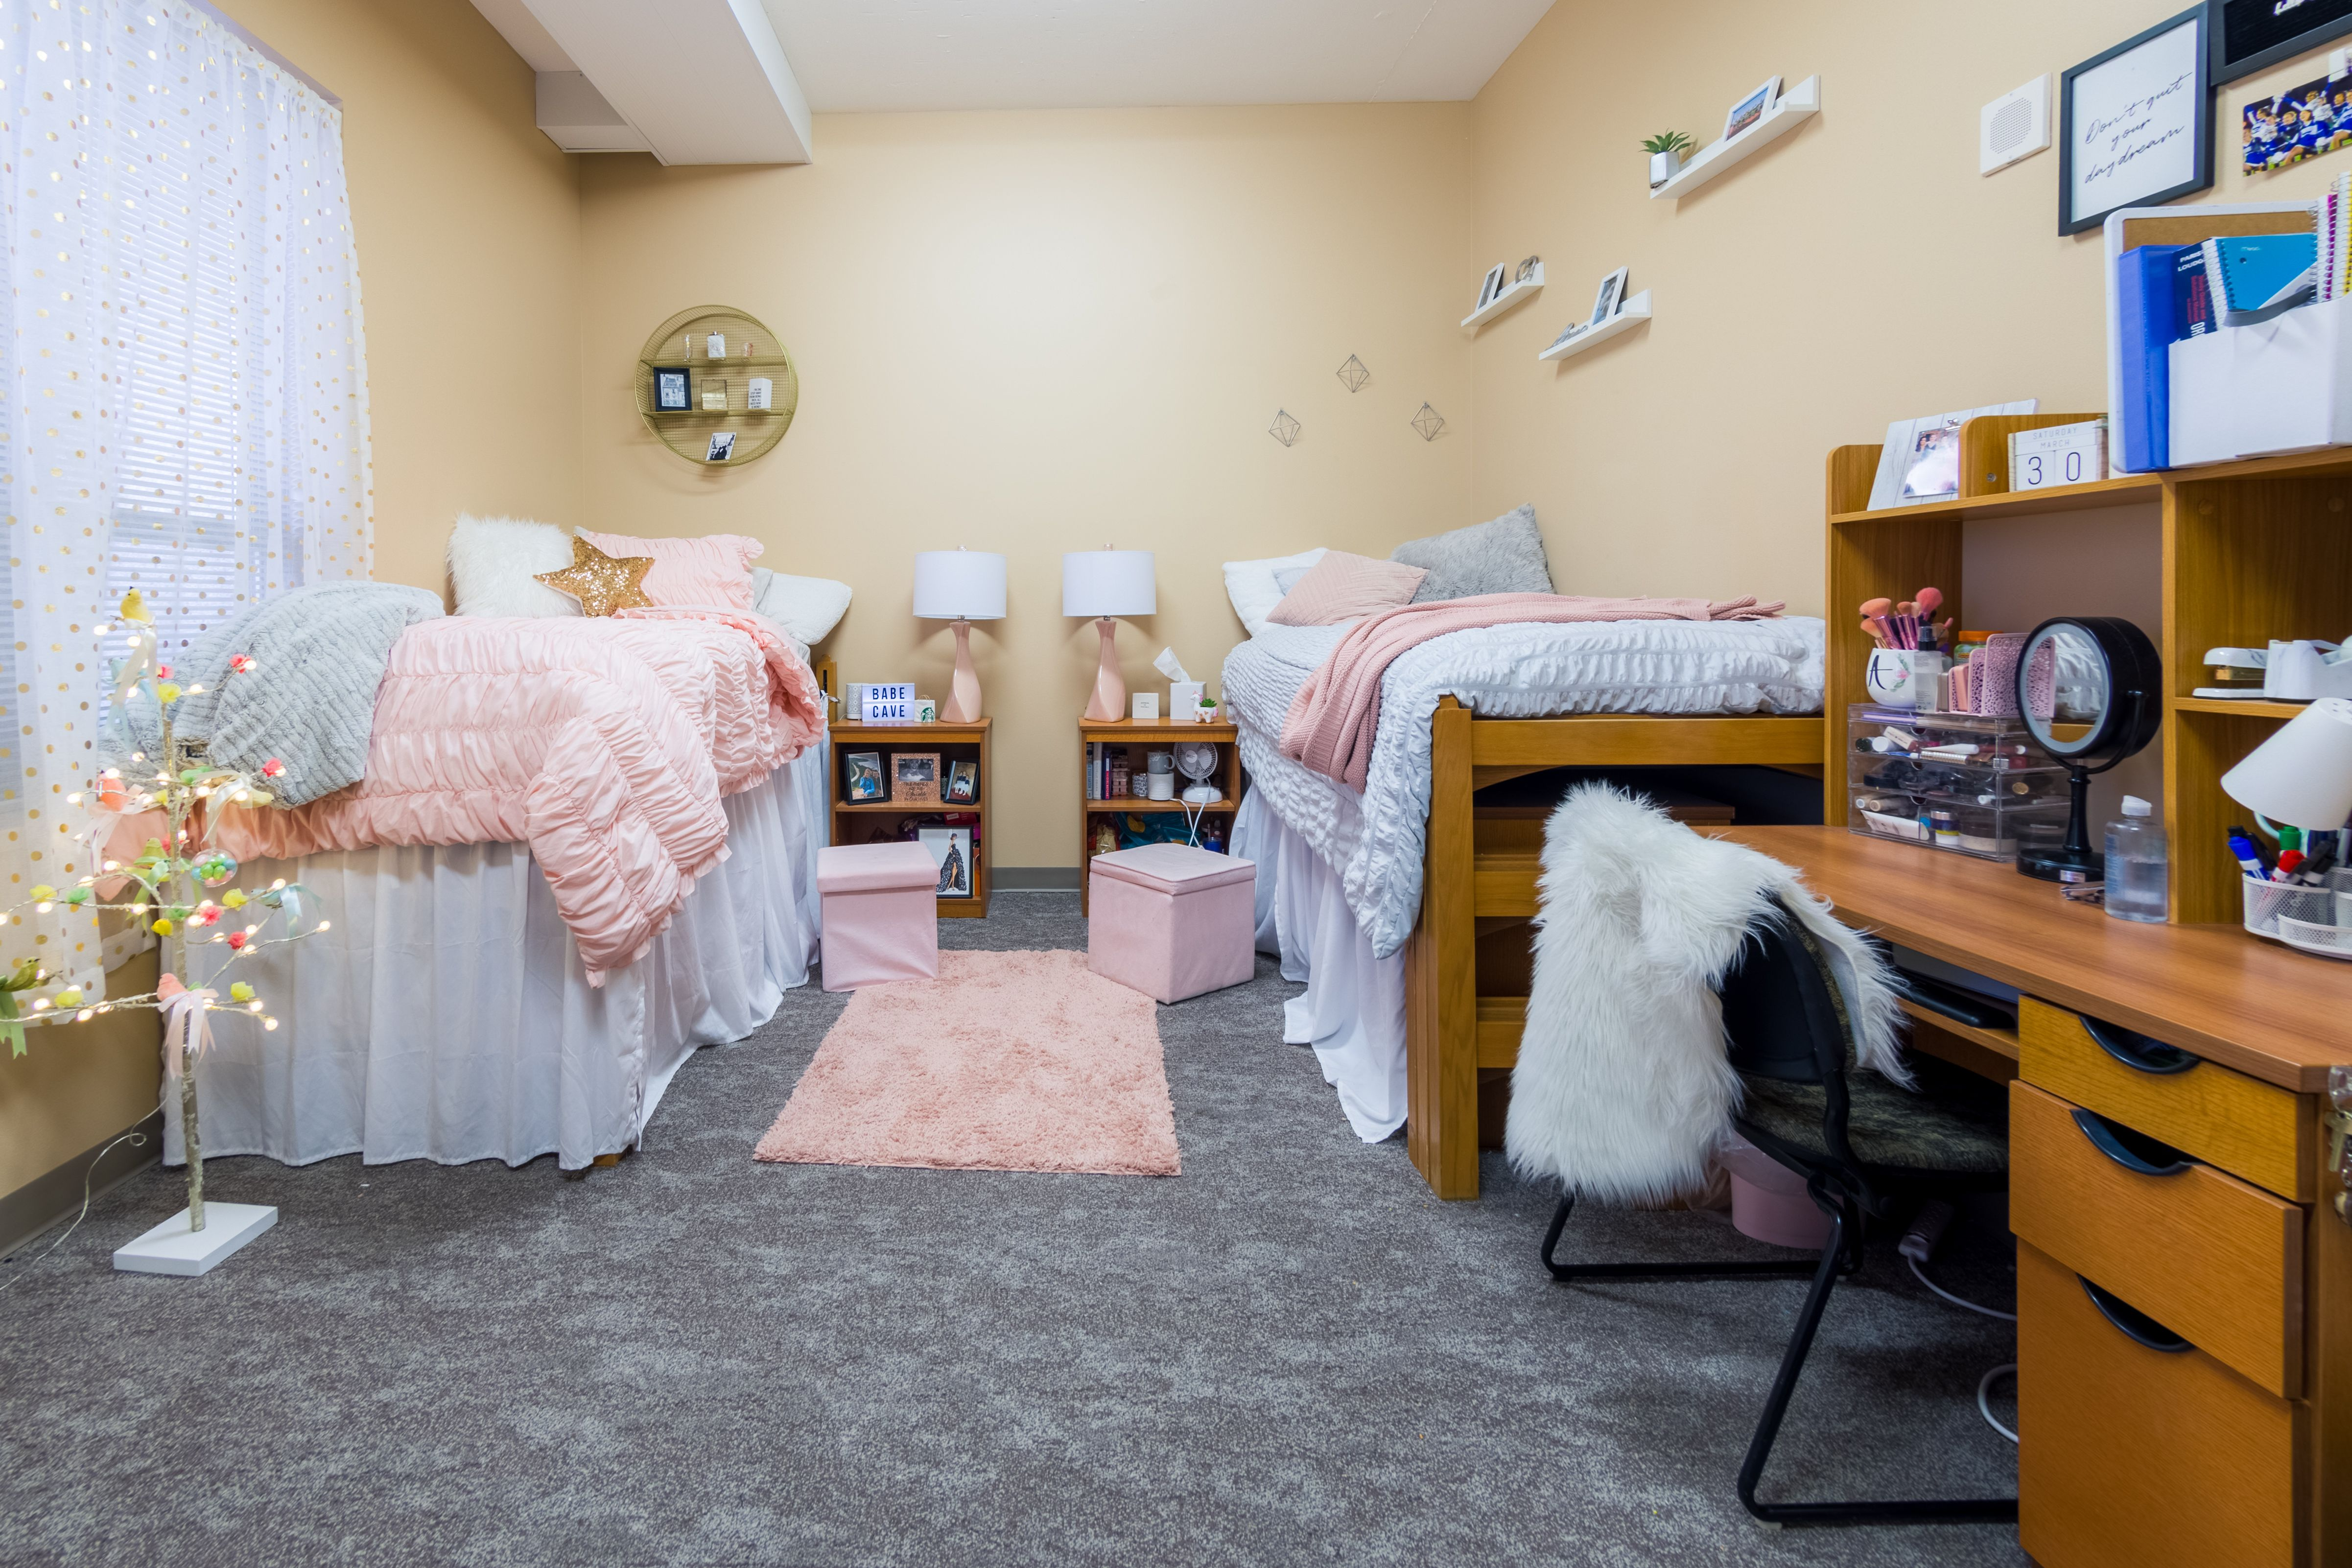 Pin By Uw Madison University Housing On Best Room Contest Cool Rooms Room Home